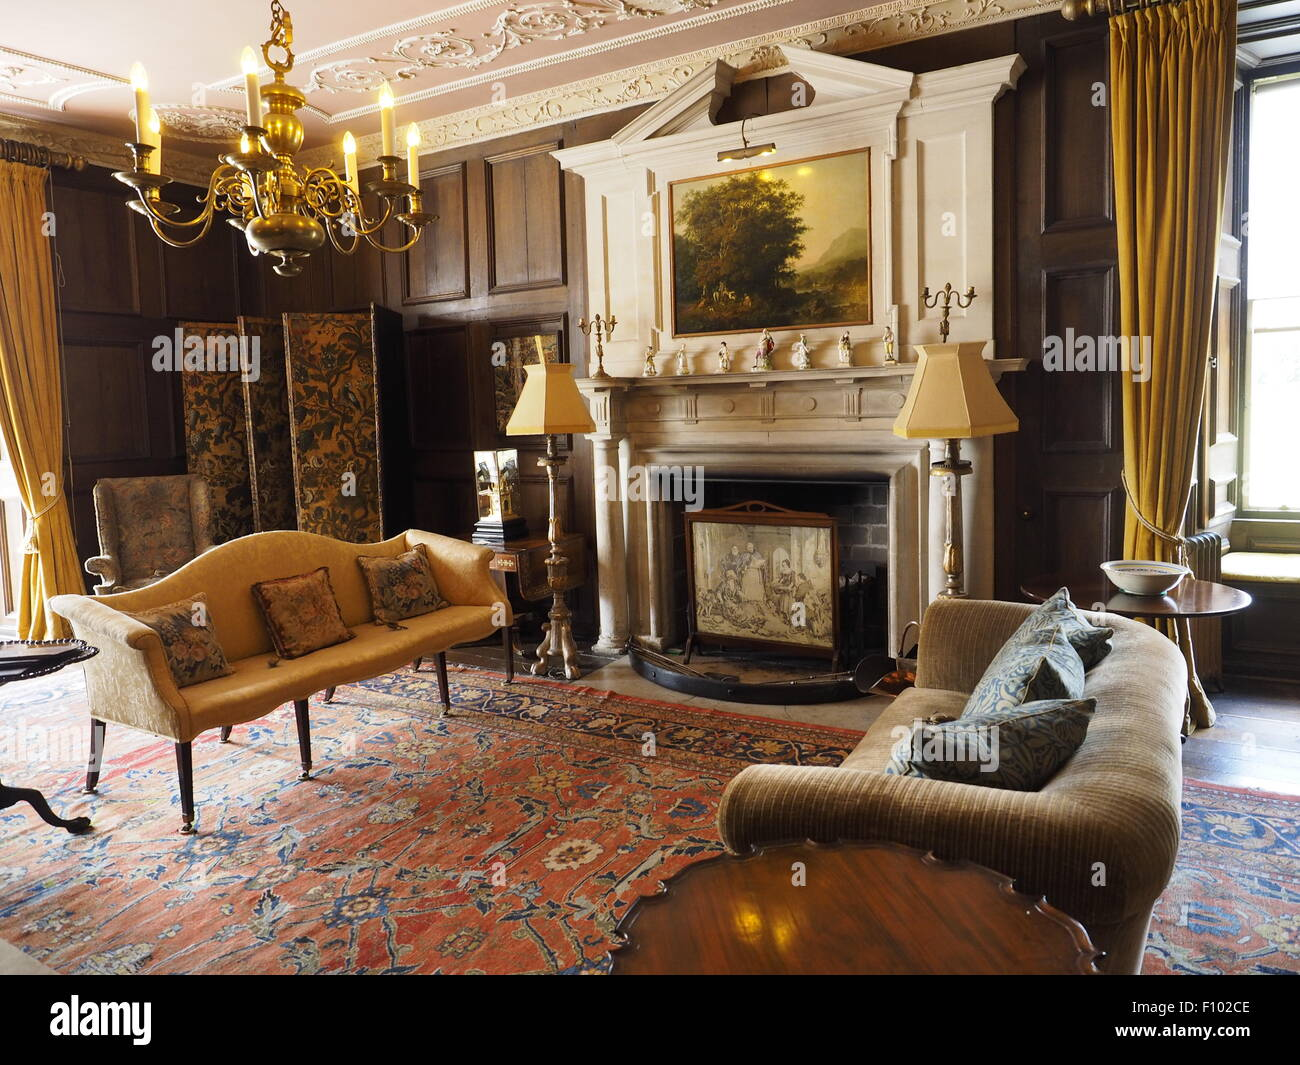 Small Garden Designs And Layouts, Landscape Interior View Croft Castle Is A Late 17th Century House Stock Photo Alamy